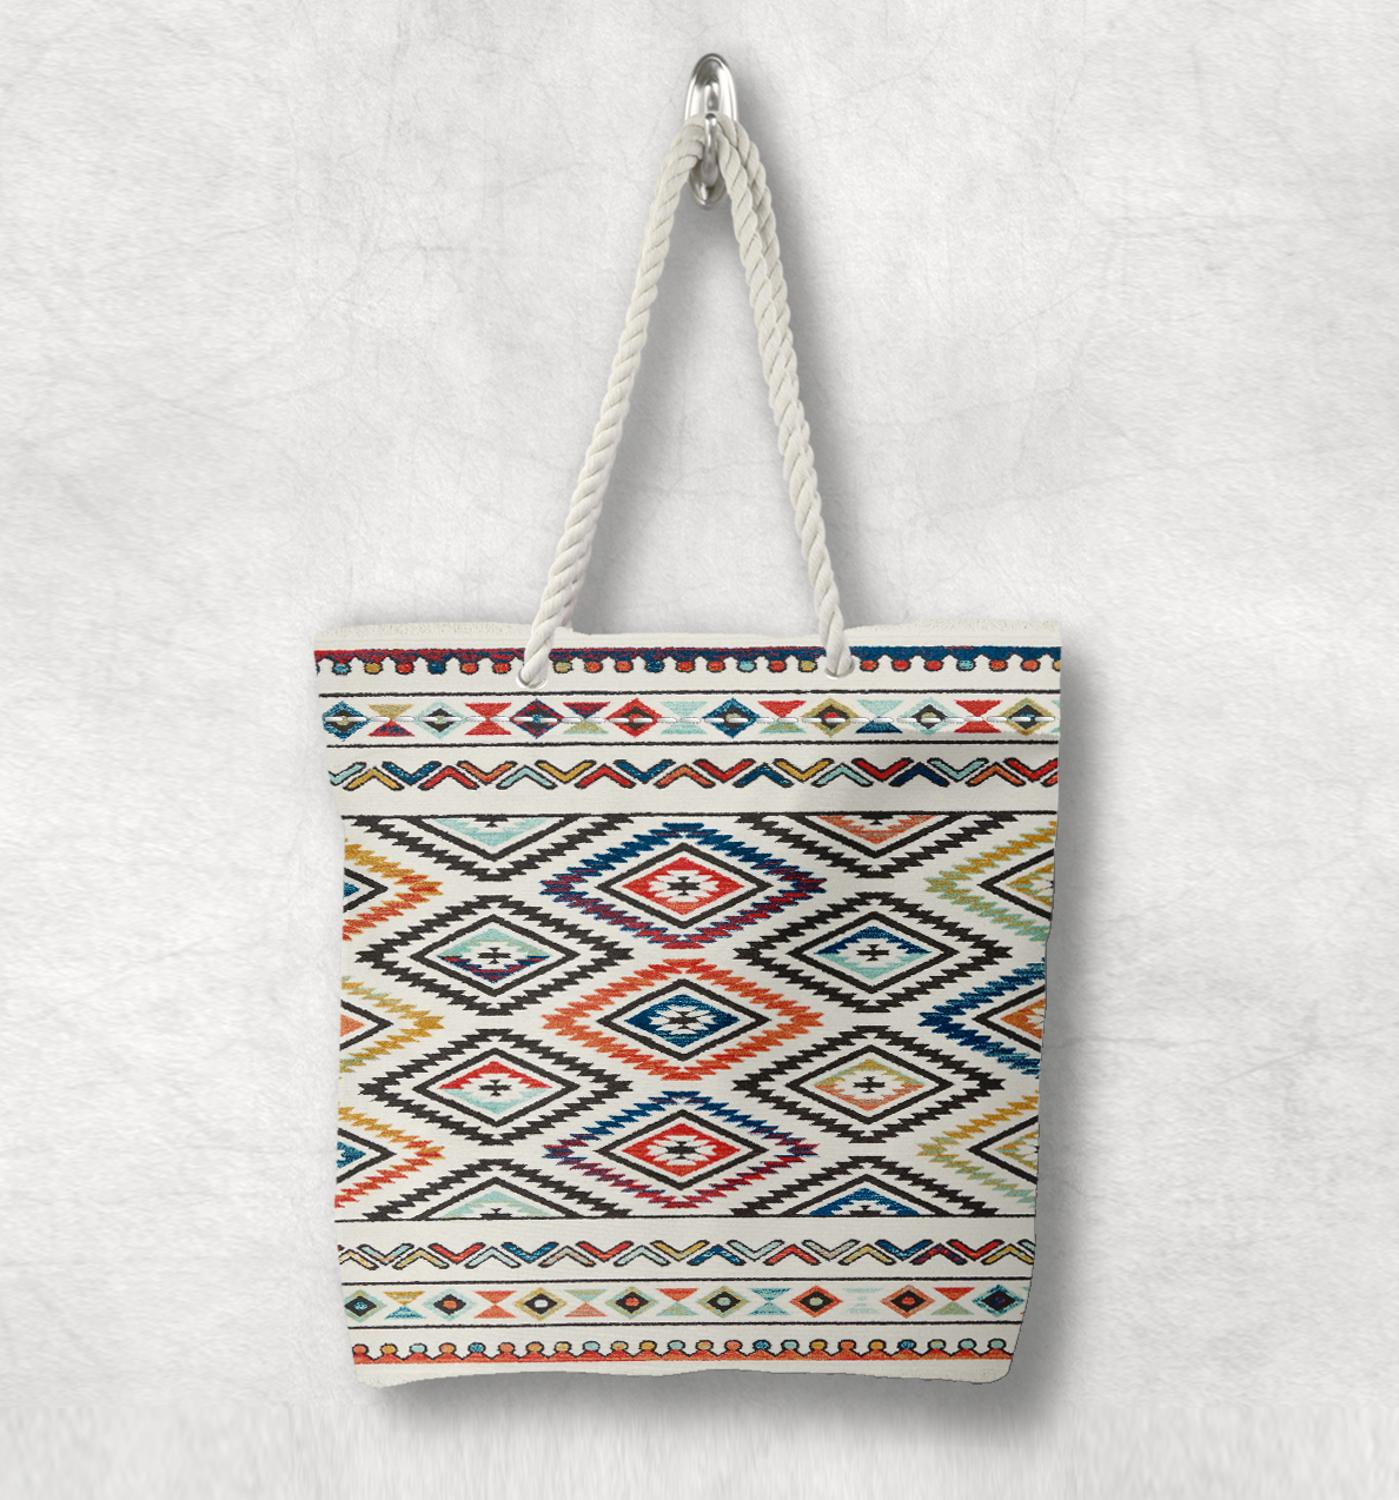 Else Colored Antique Anatolia Turkish Kilim Design White Rope Handle Canvas Bag Cotton Canvas Zippered Tote Bag Shoulder Bag